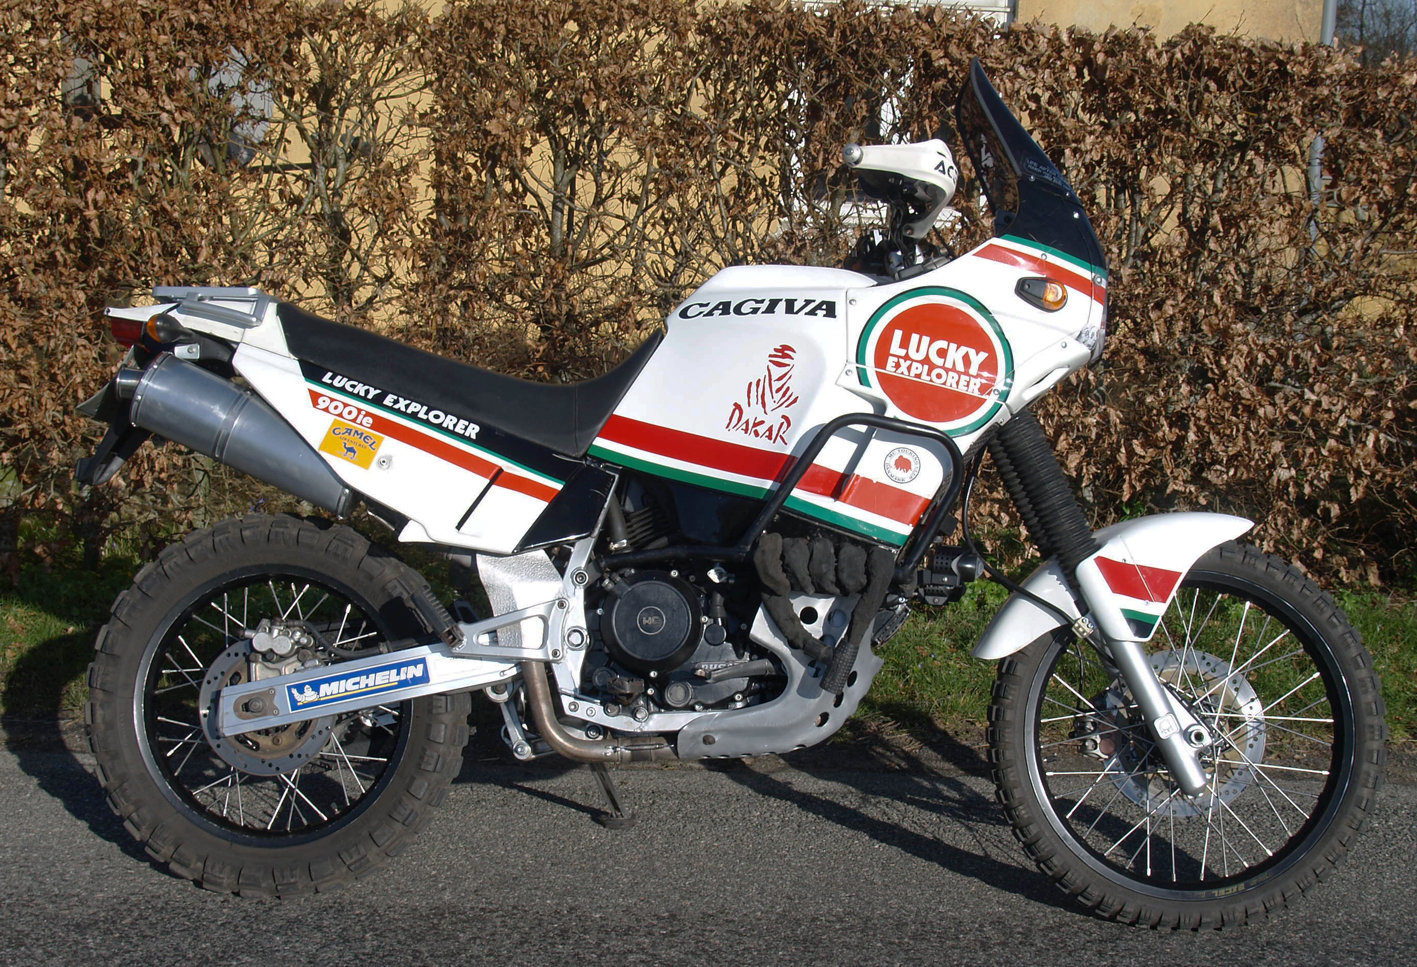 1990 CAGIVA ELEFANT LUCKY EXPLORER 900ie For Sale (picture 6 of 6)